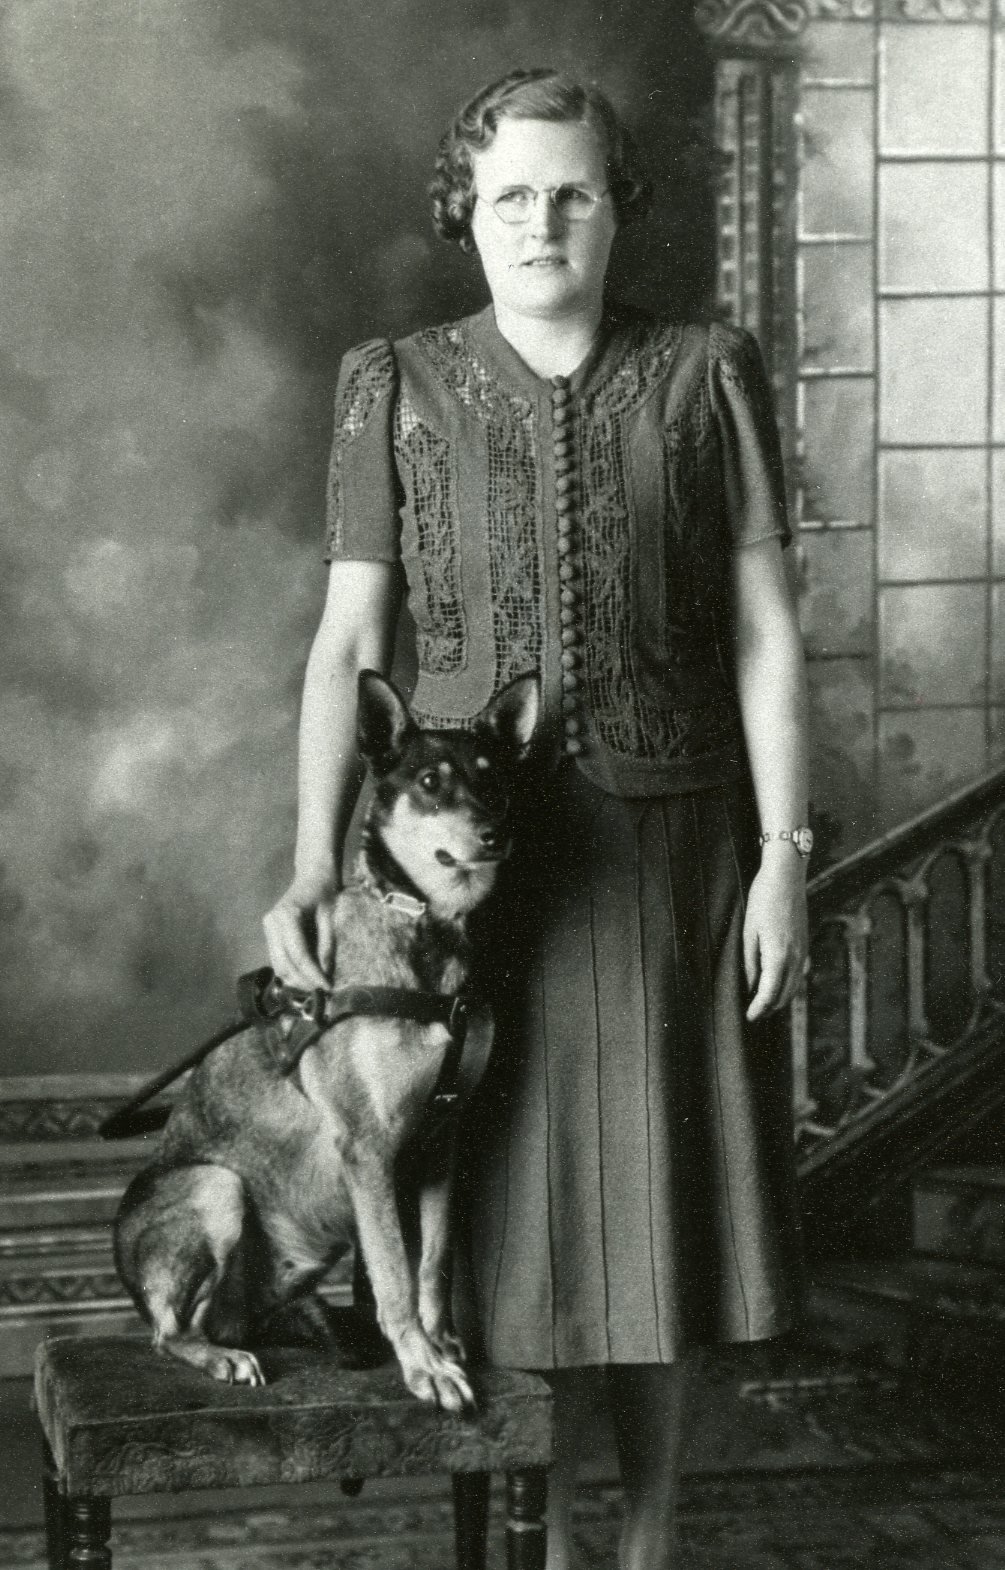 Viola Eid,1932 Concordia graduate with her seeing eye dog